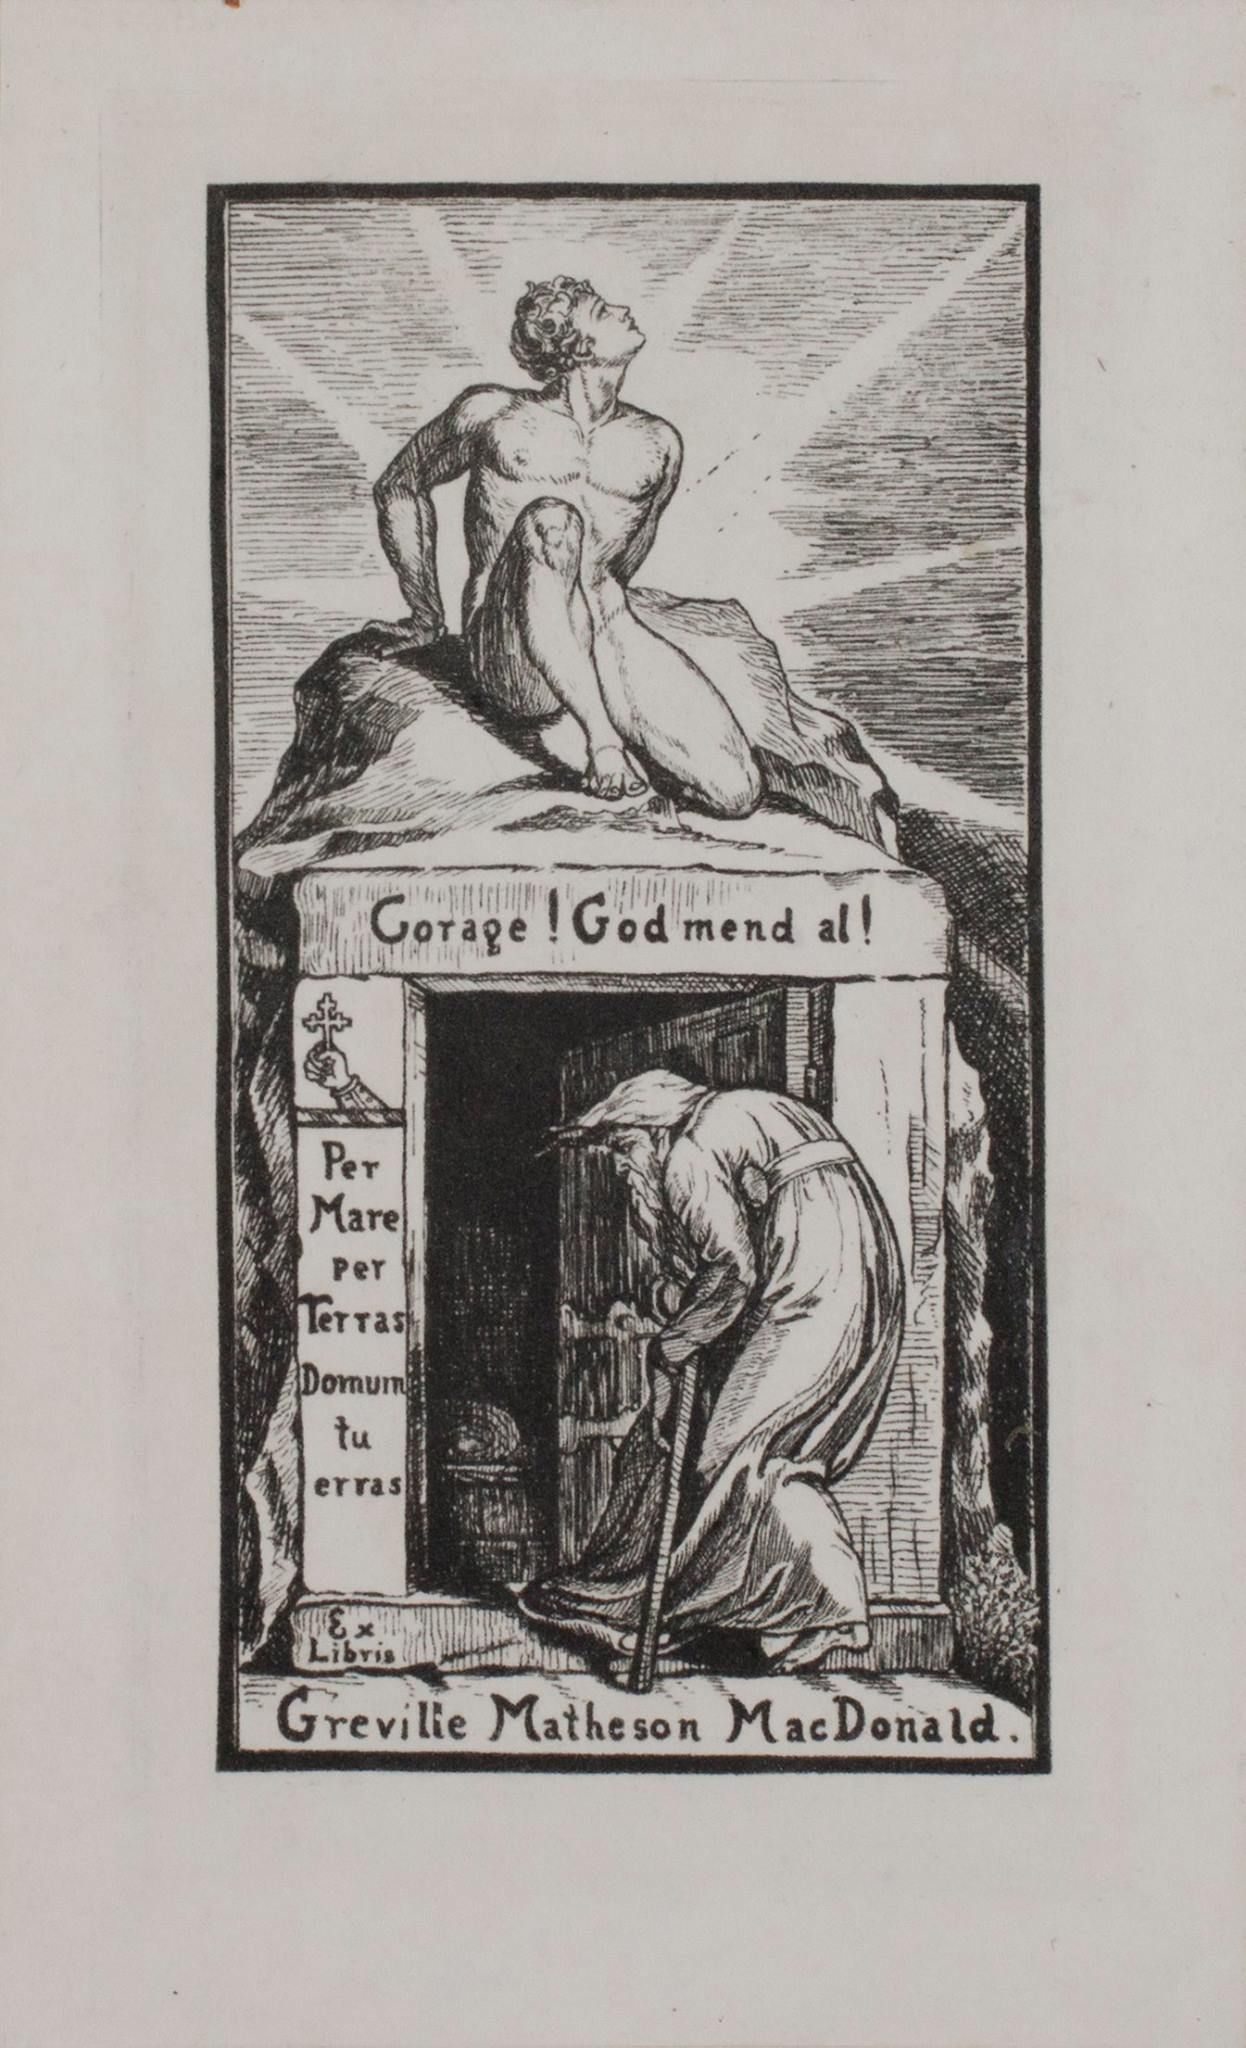 """Greville Matheson MacDonald (1856-1944) was the eldest son of novelist and poet George Macdonald. His bookplate imitates his father's, which was based on an engraving by William Blake. We read: 'Corage! God mend al', an anagram of his father's name and 'Per Mare, per Terras, Domum tu erras', Through the sea, through the lands, you wander homeward. The bookplate occurs in a 1651 edition of Jacob Böhme's """"De signatura rerum, or the signature of all things"""", printed in London…"""